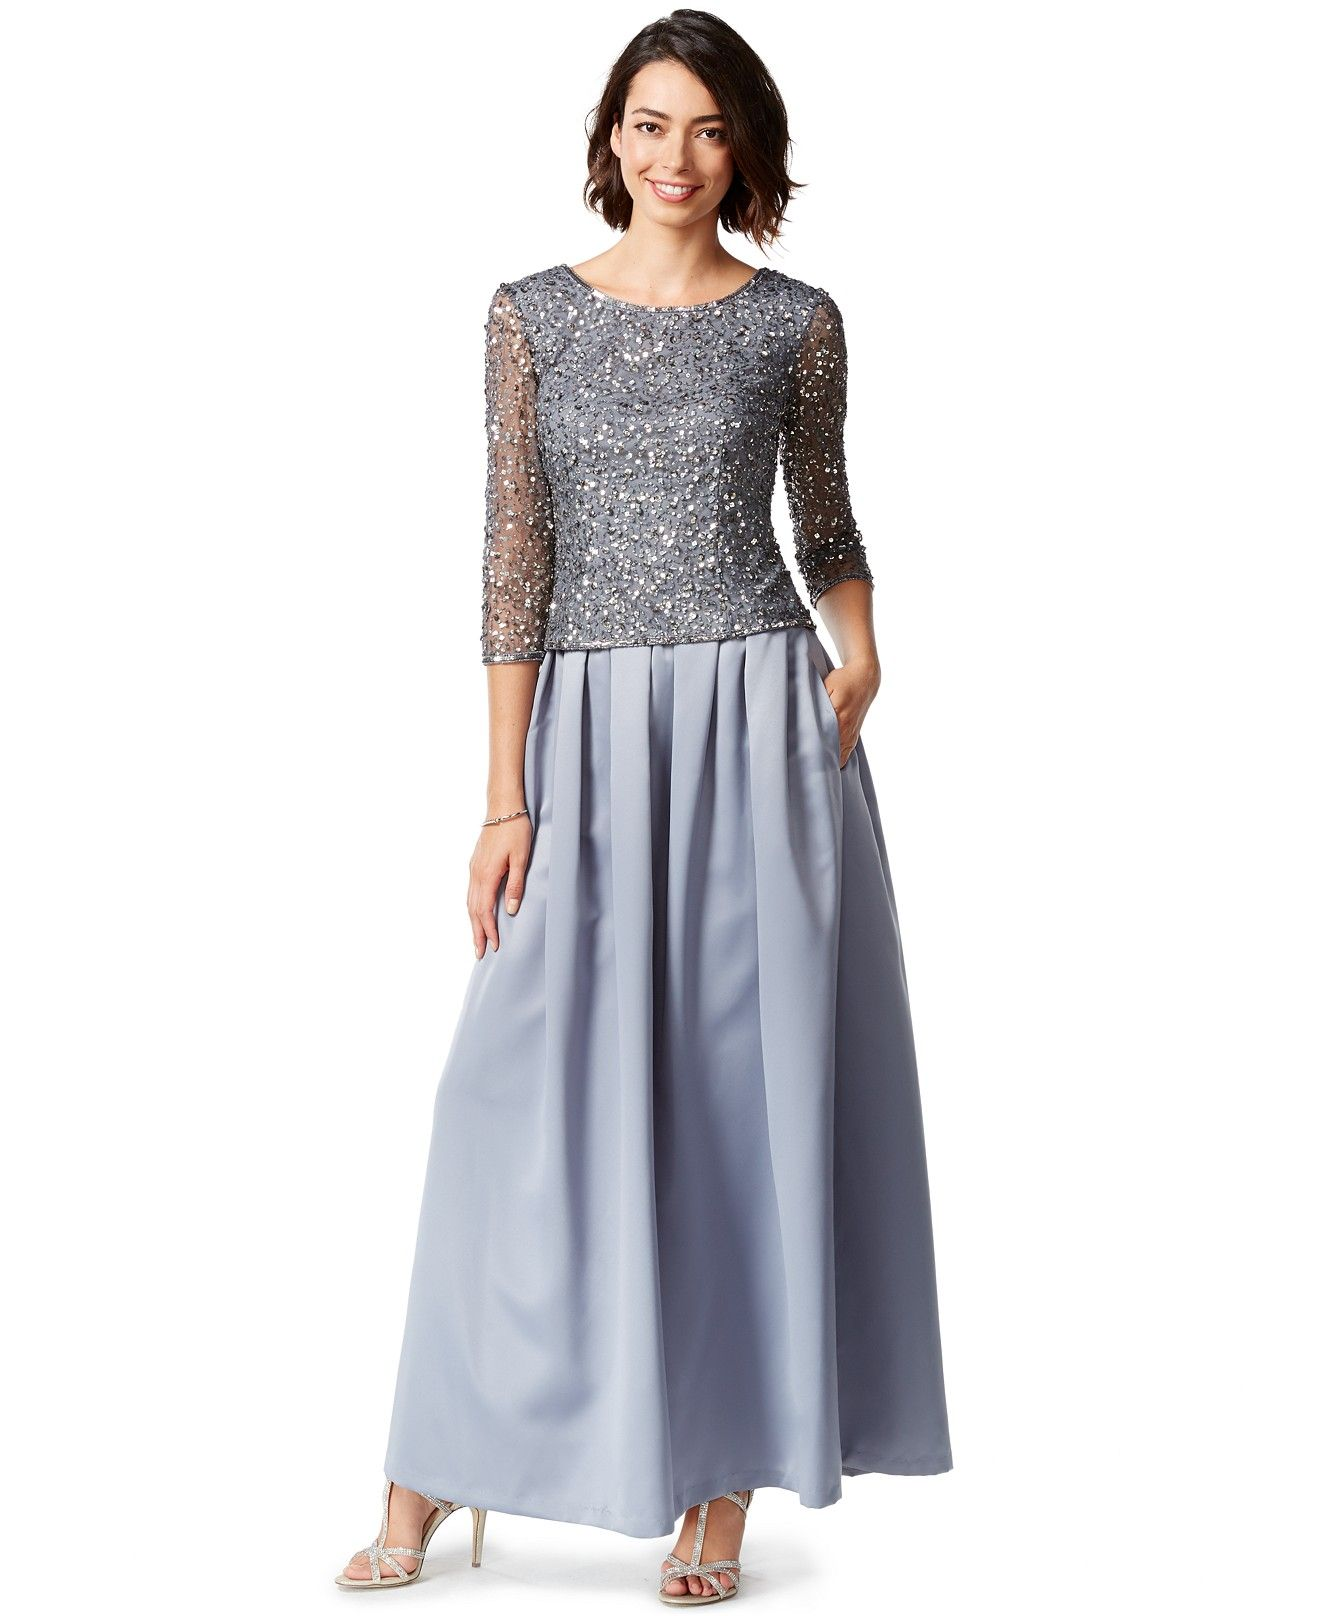 Patra Embellished Sequin Gown - Dresses - Women - Macy\'s | Wedding ...